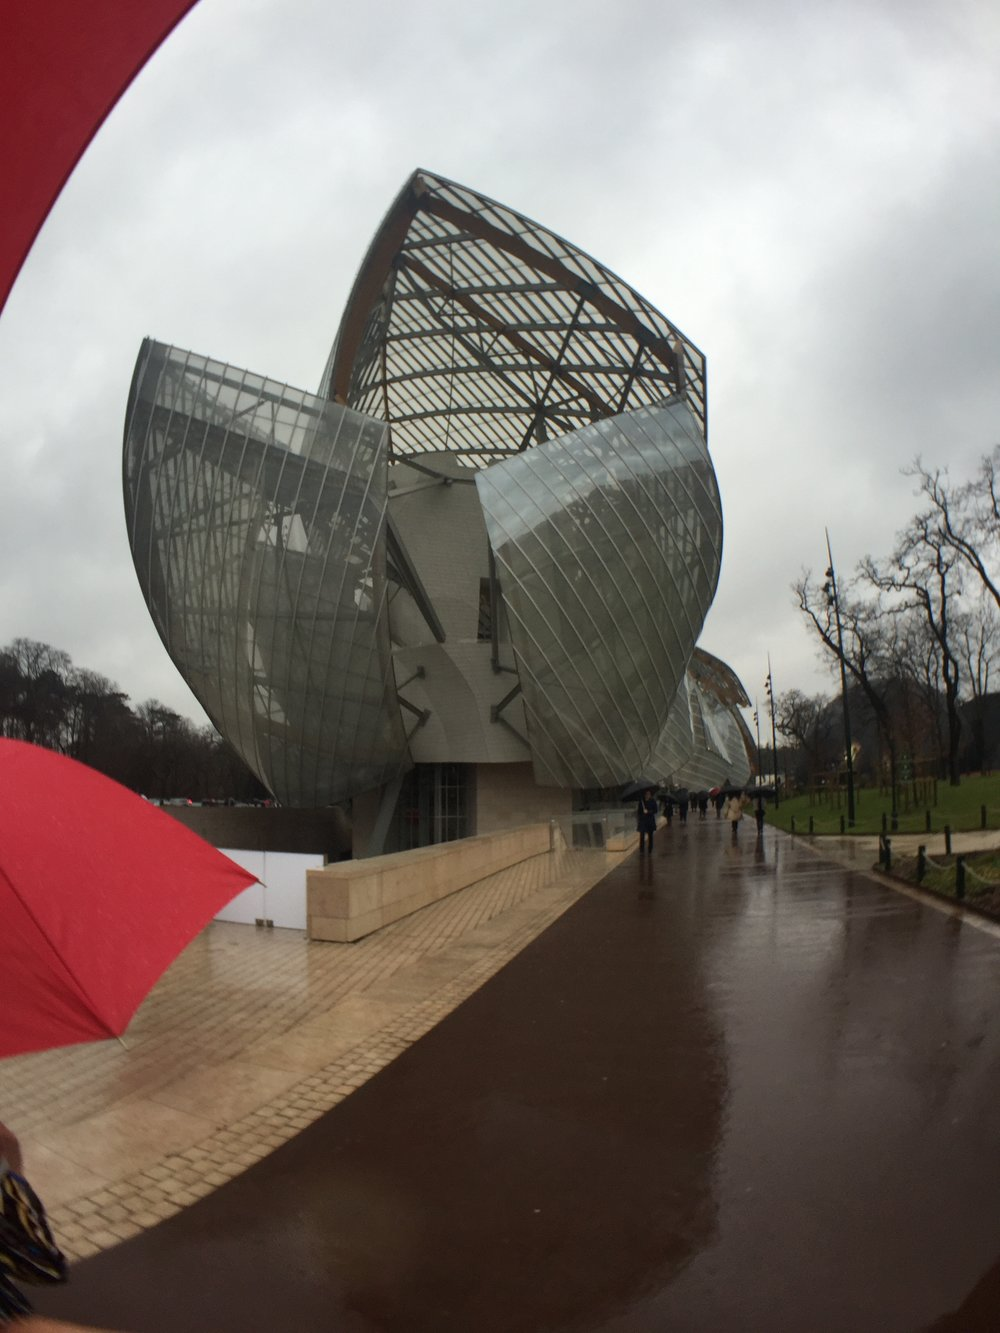 Paris Fashion Week Louis Vuitton Fall 2016 - The show was held in geometric tents outside the Louis Vuitton Foundation building.  It's an art museum and cultural center designed by architect Frank Gehry.